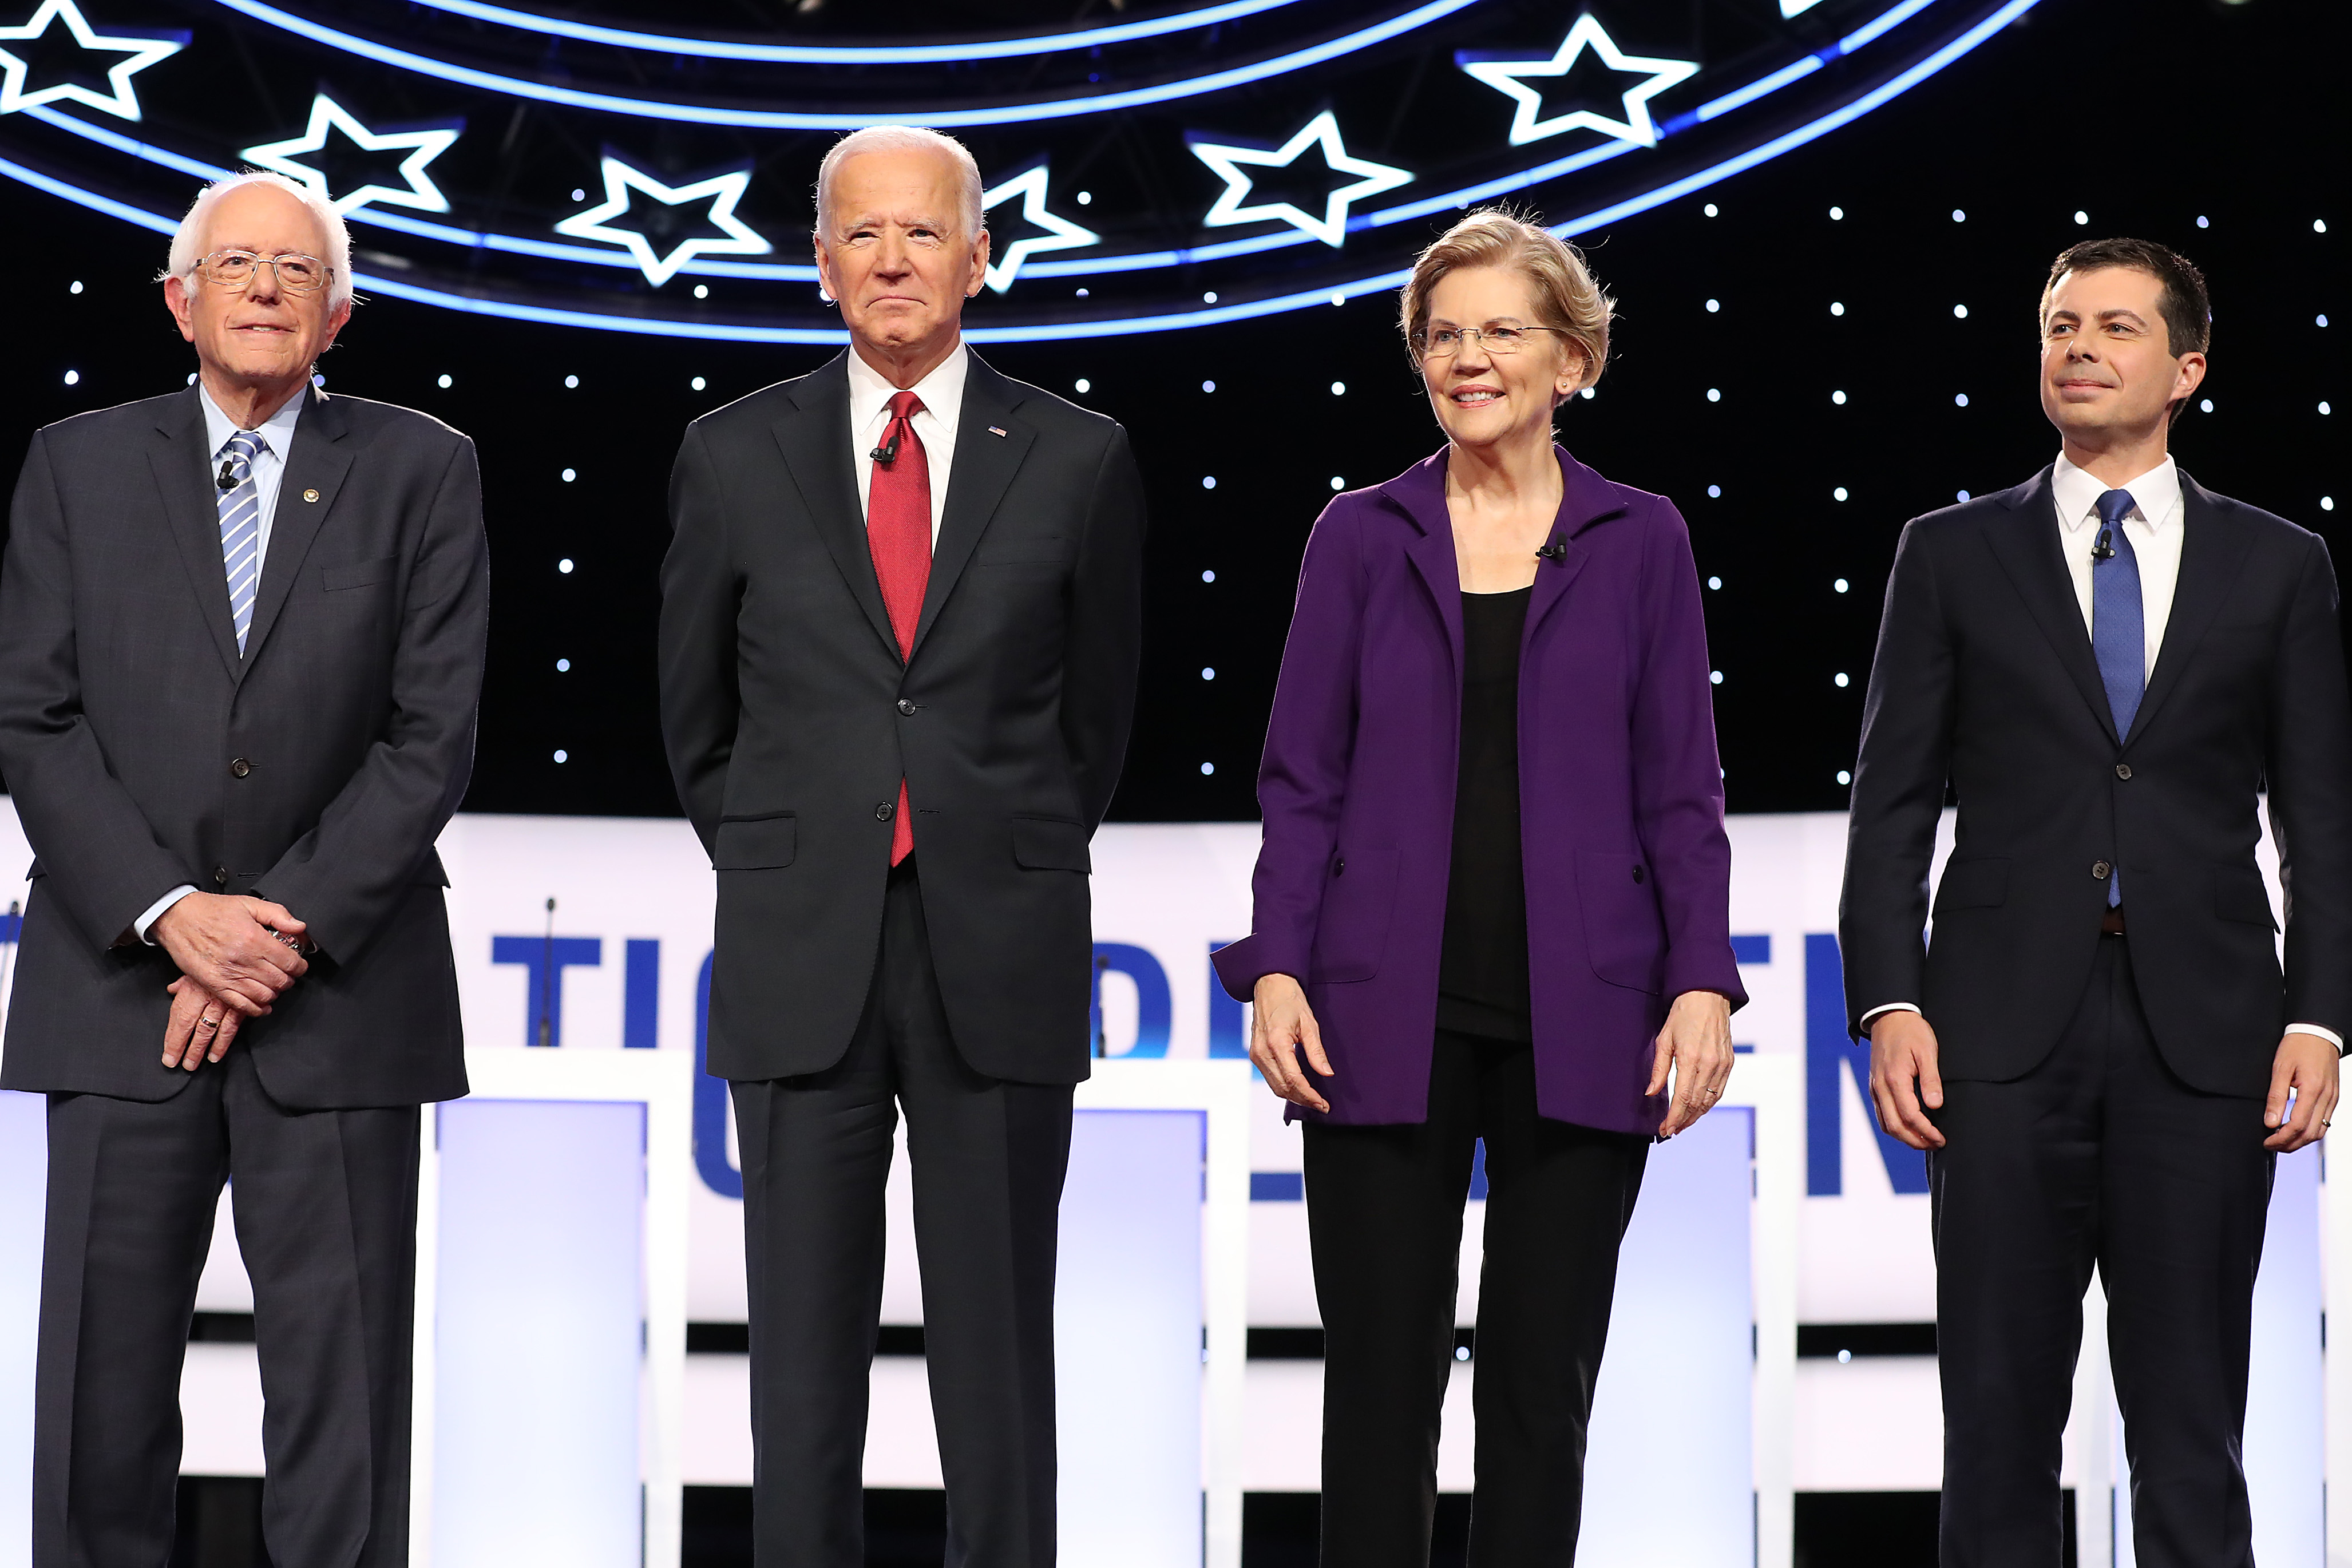 Democratic candidates at the fourth debate